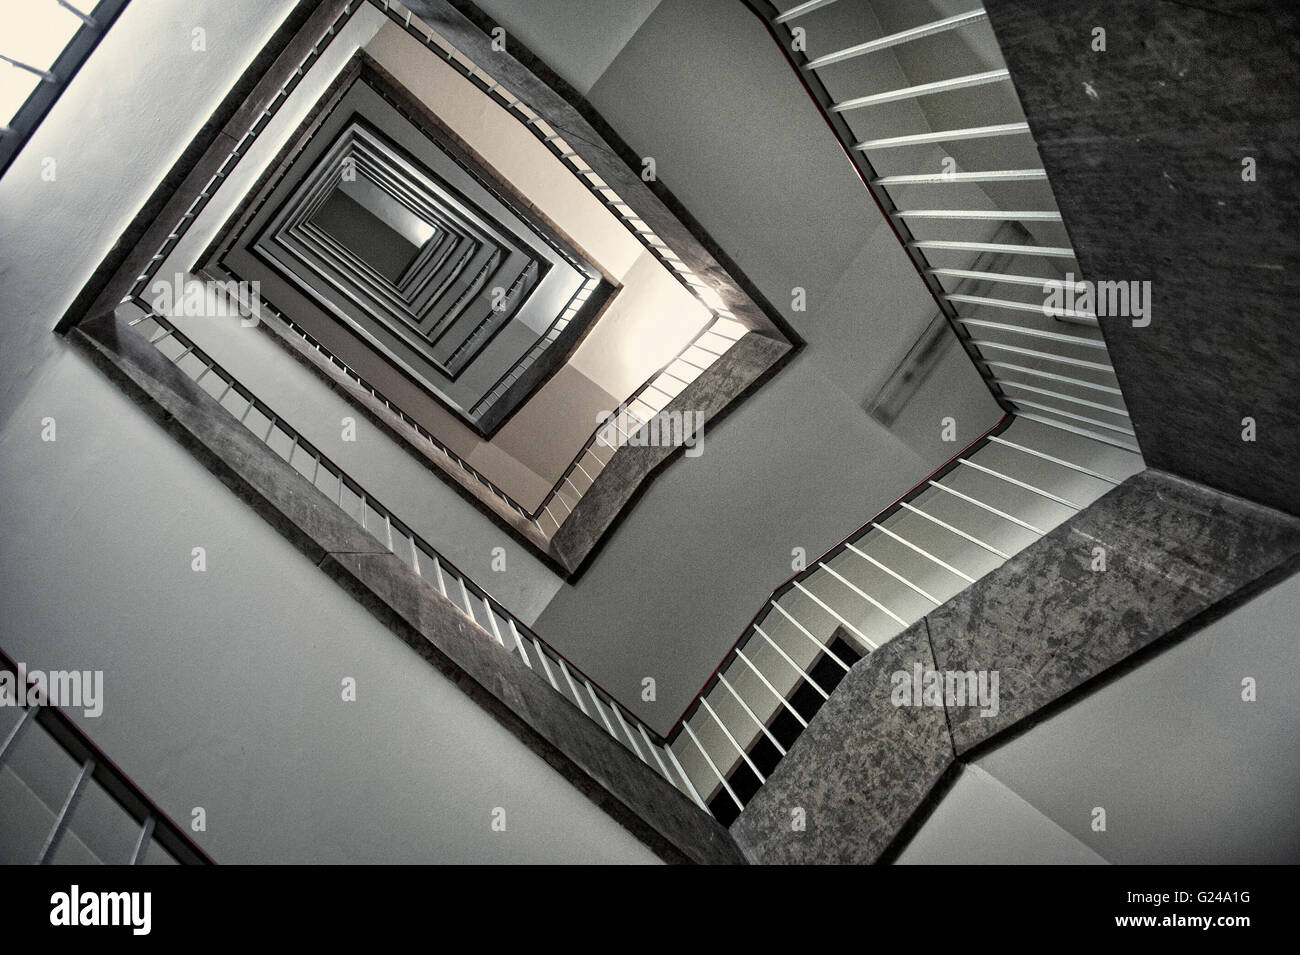 Stairwell, tour of hidden places at Tempelhof Airport, Berlin, Germany - Stock Image